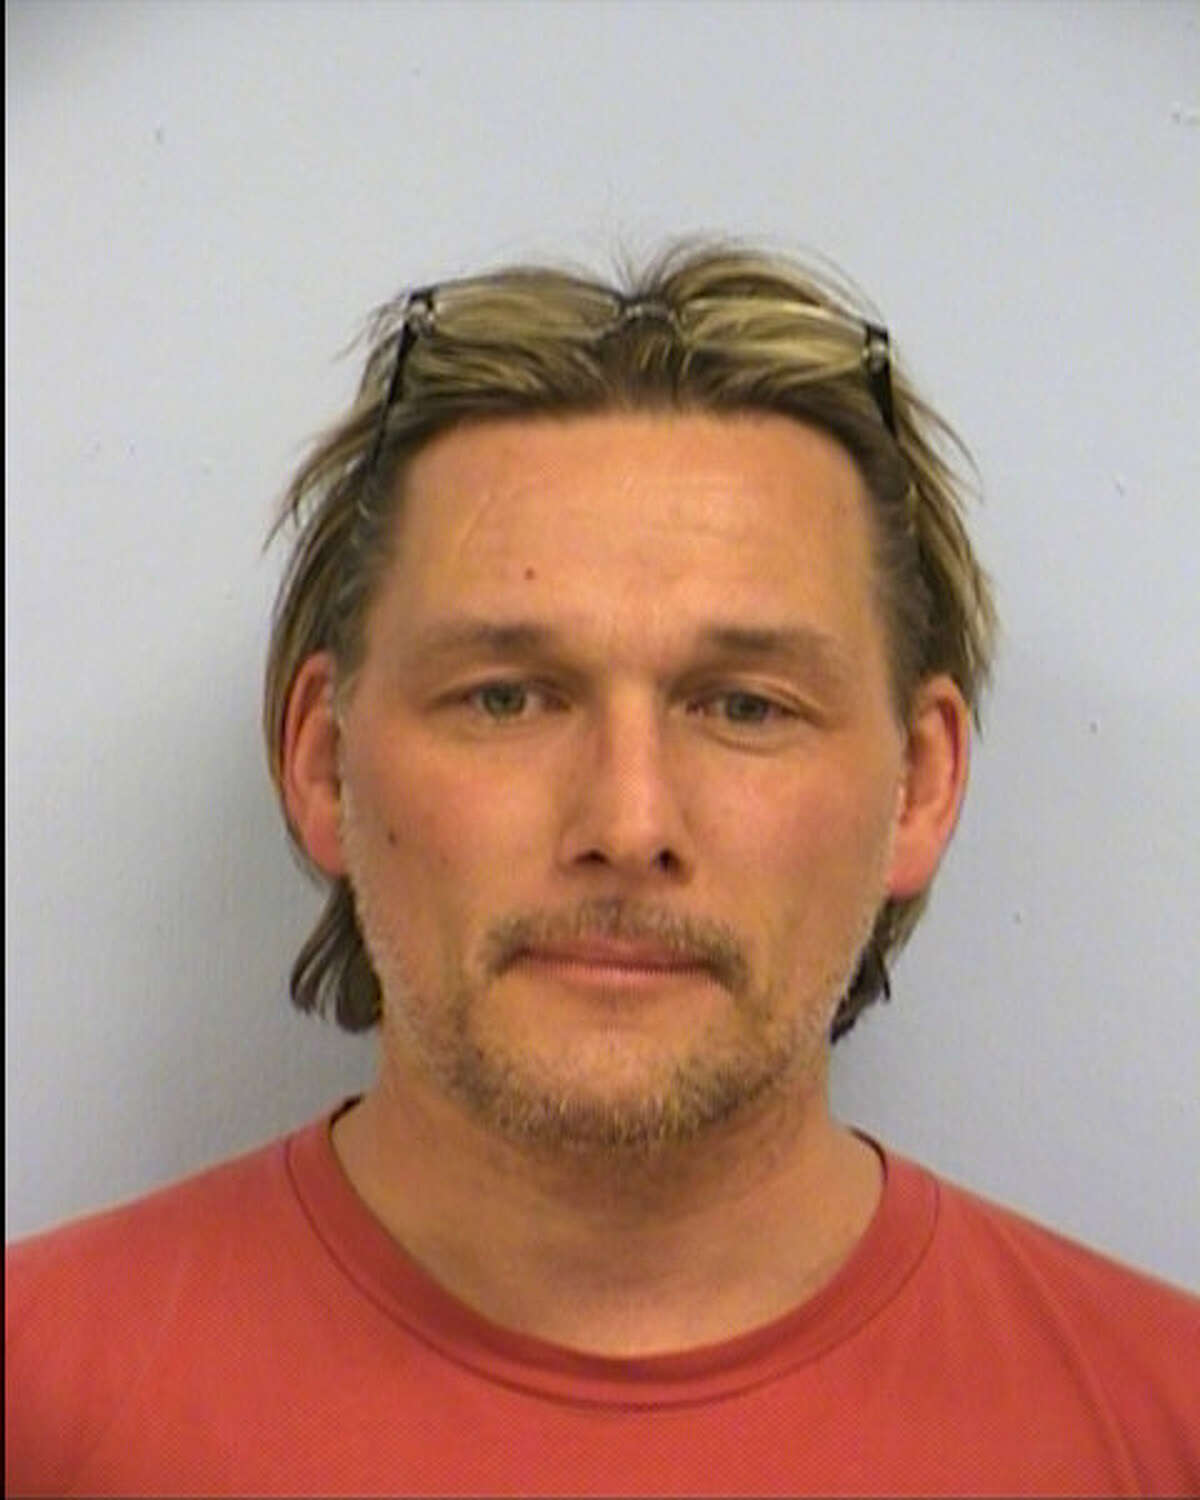 Allen Edmonds, a 44-year-old driver for the ride-hailing service Lyft, has been fired after being charged with driving while intoxicated in Austin with a customer in the vehicle.